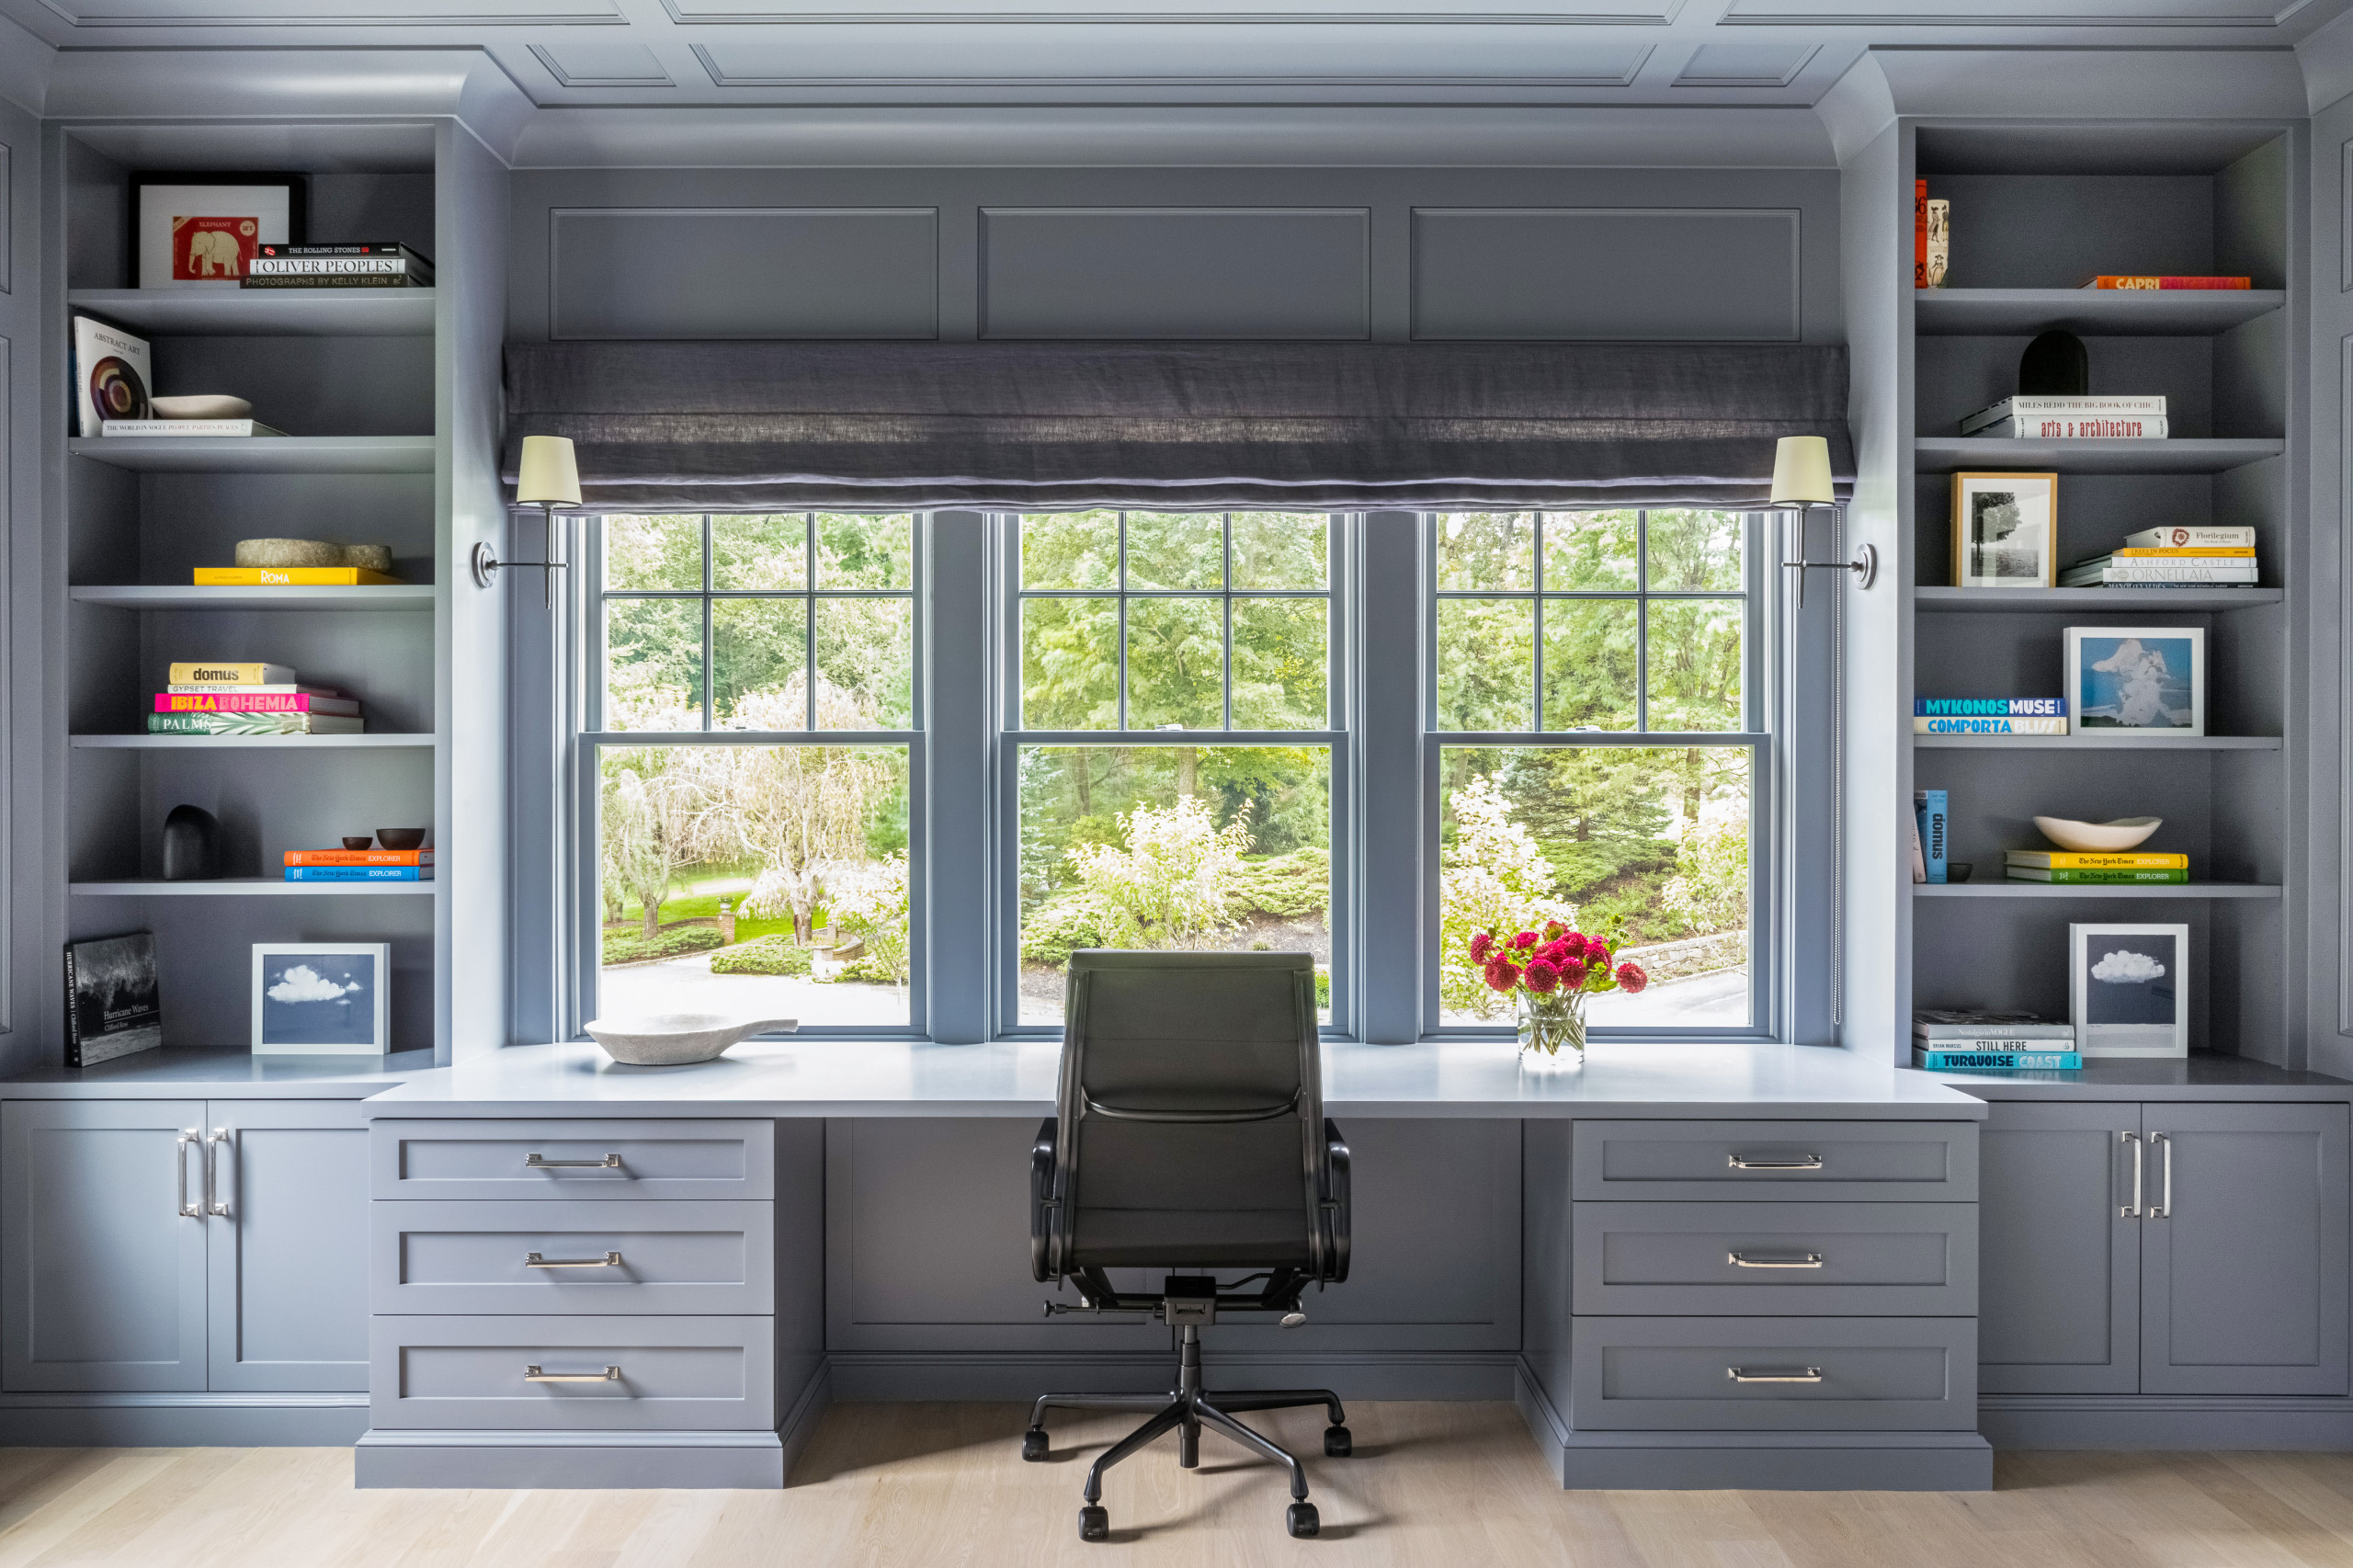 75 Beautiful Study Room Pictures Ideas September 2020 Houzz